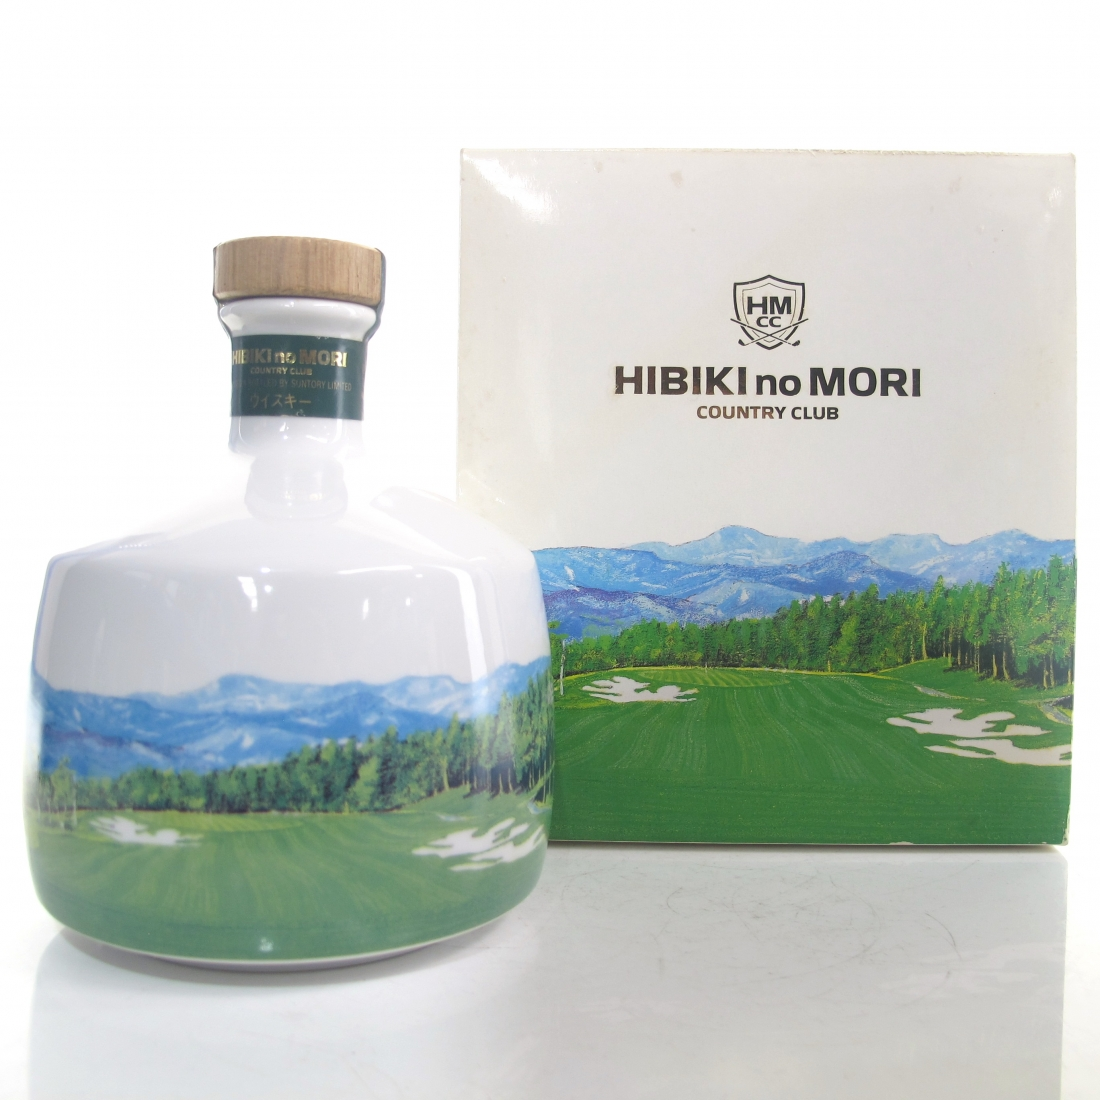 Hibiki no Mori Country Club Decanter